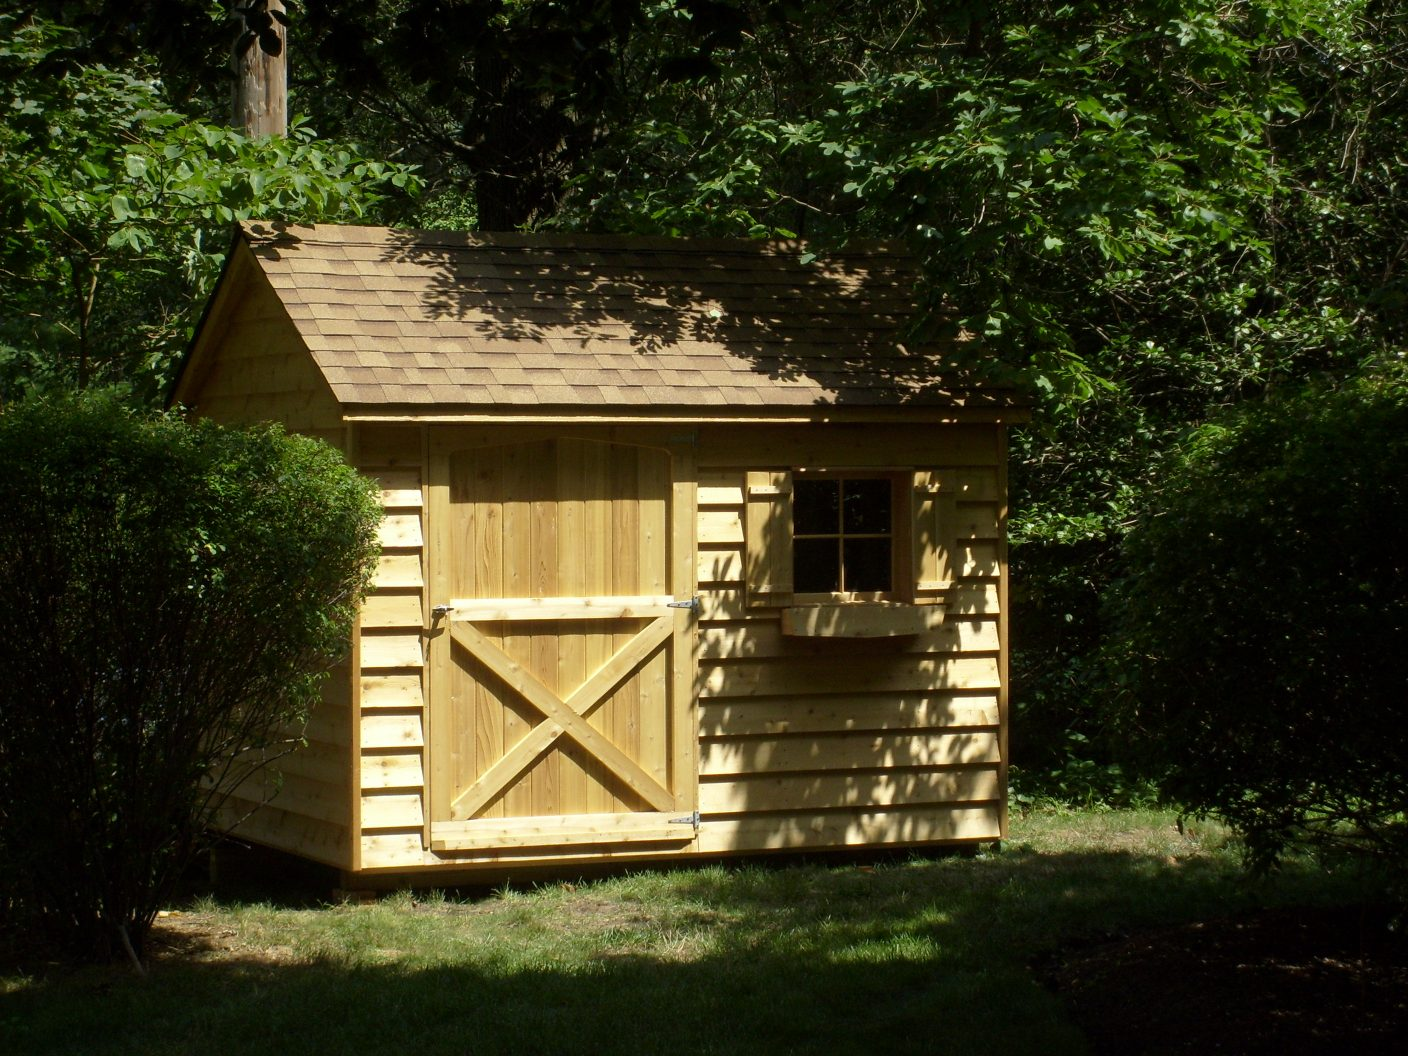 8x10 cedar gable 48 inch door, shakewood roof